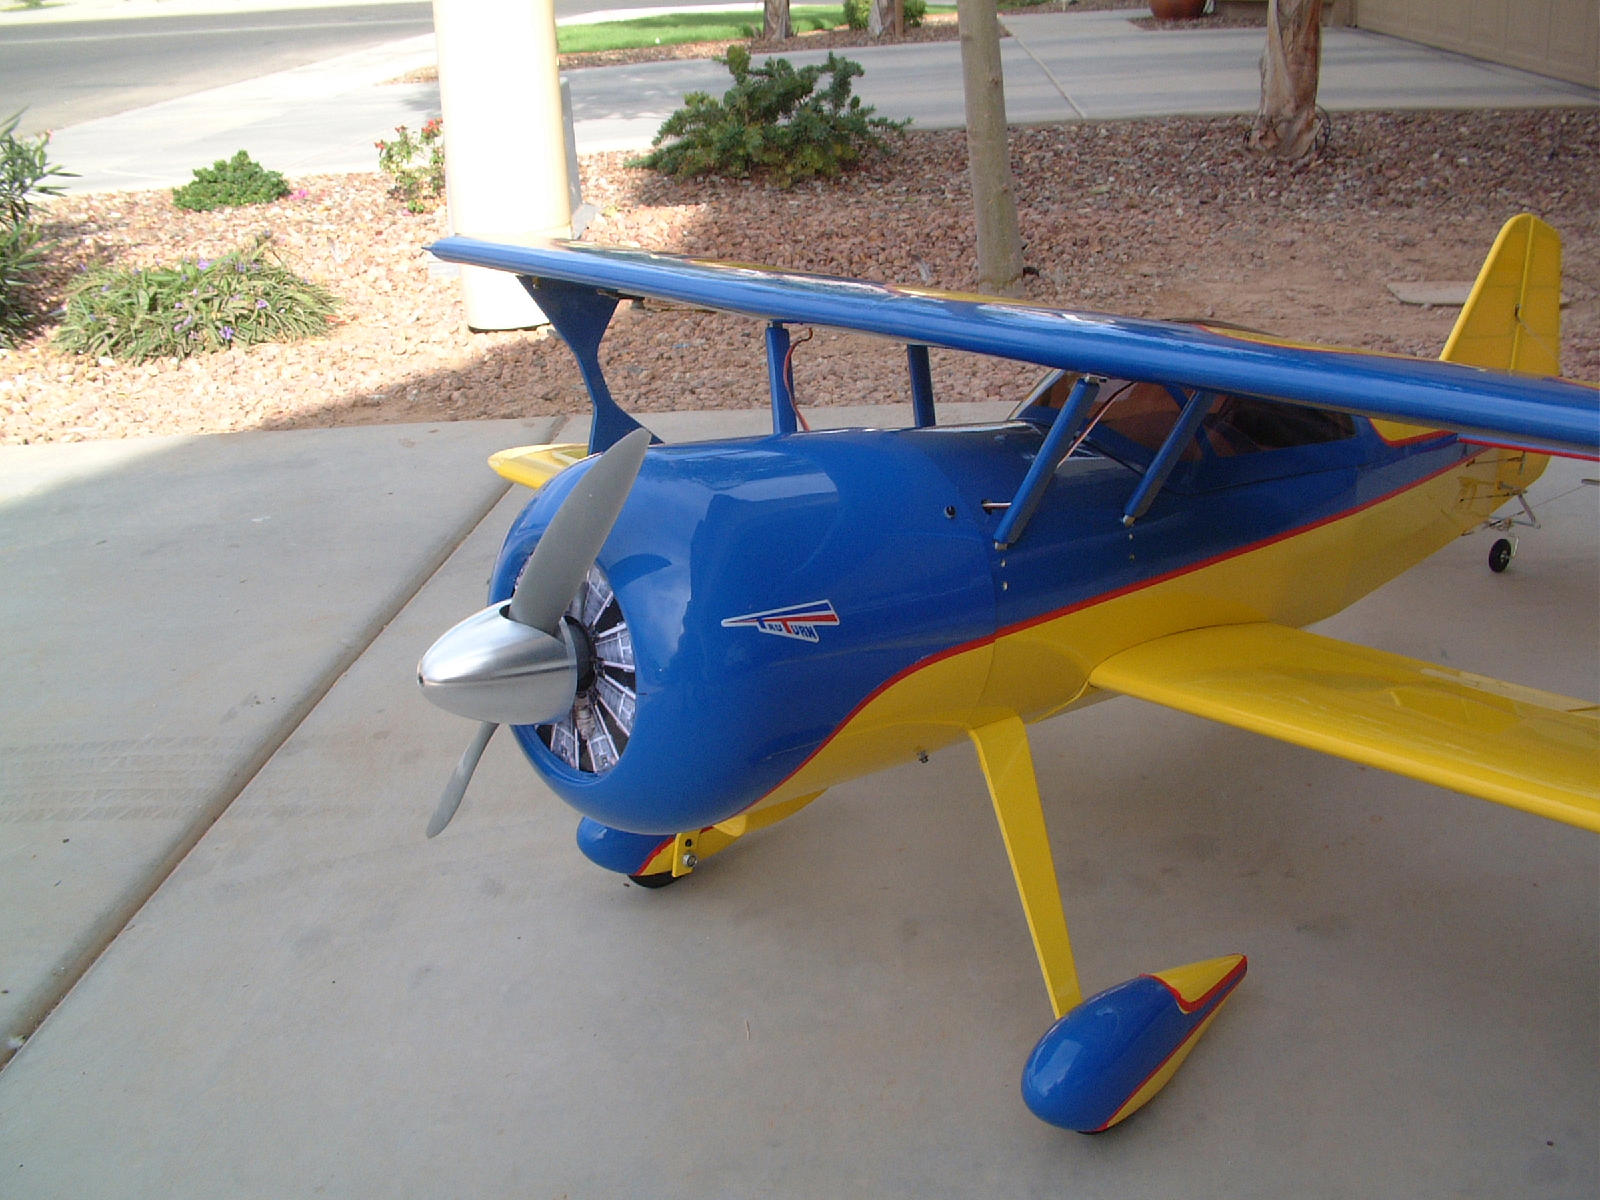 A great front view of a beautifully finished plane.